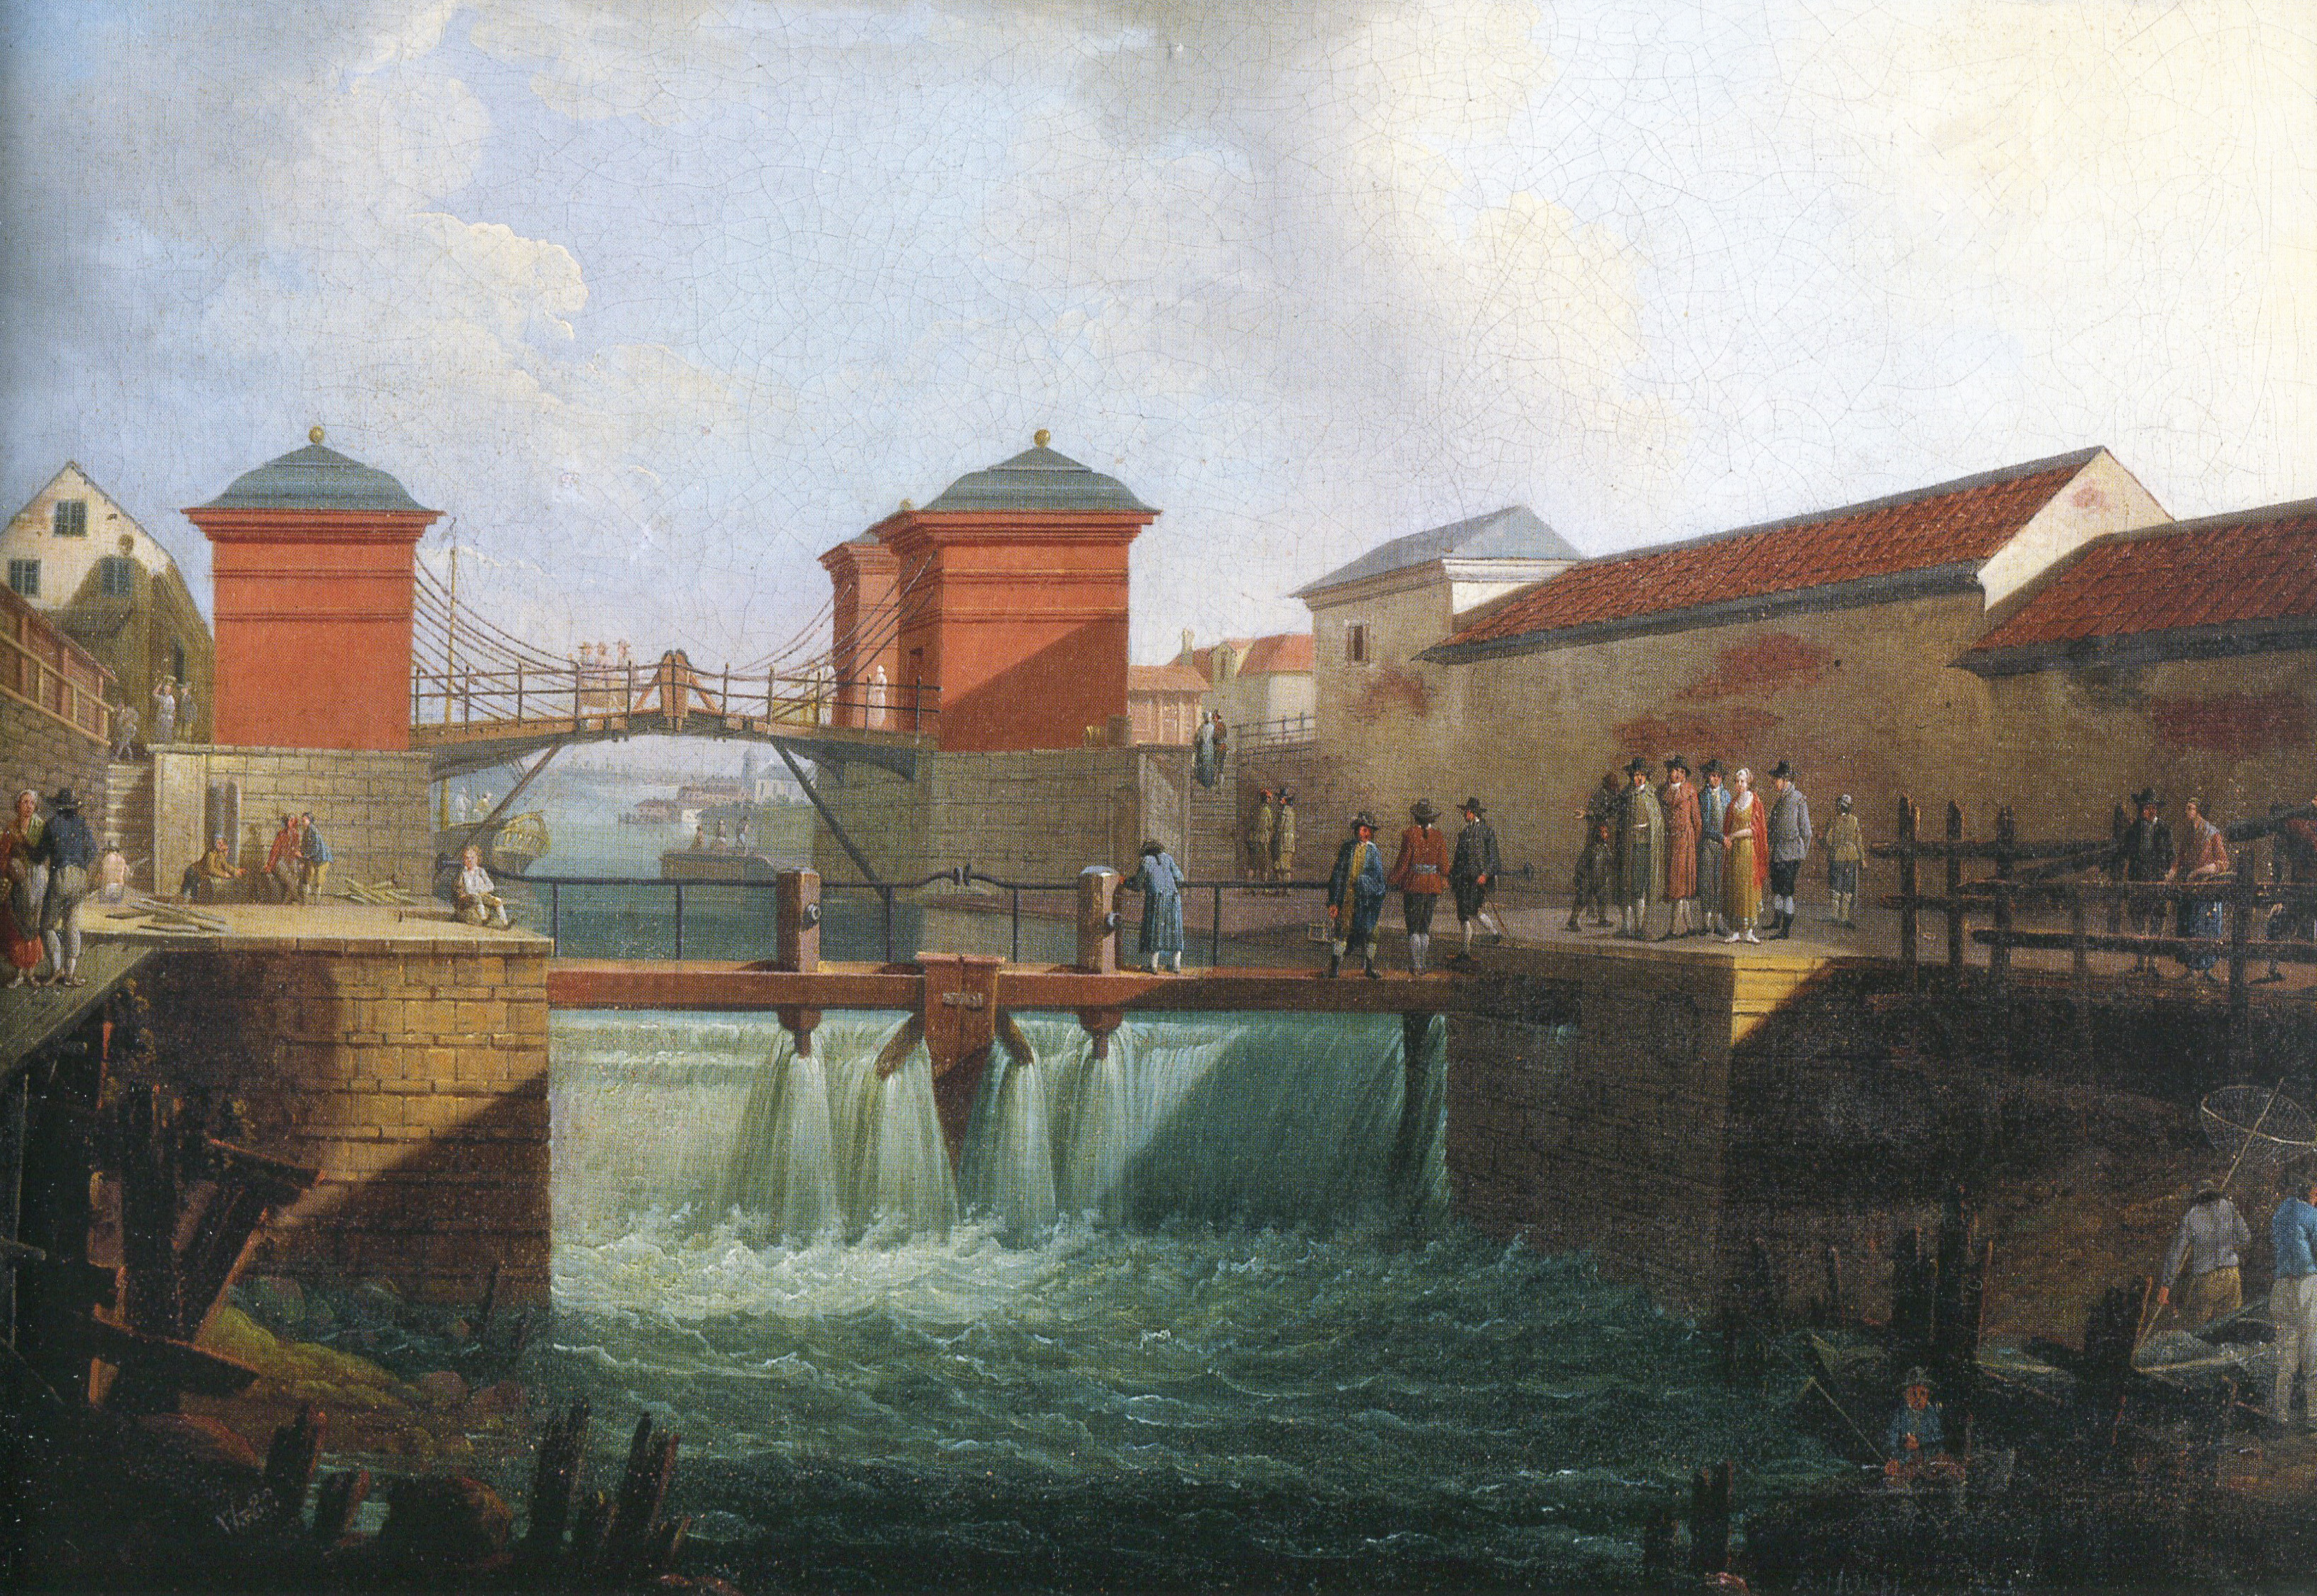 File:Polhems sluss Anders Holm 1780.jpg